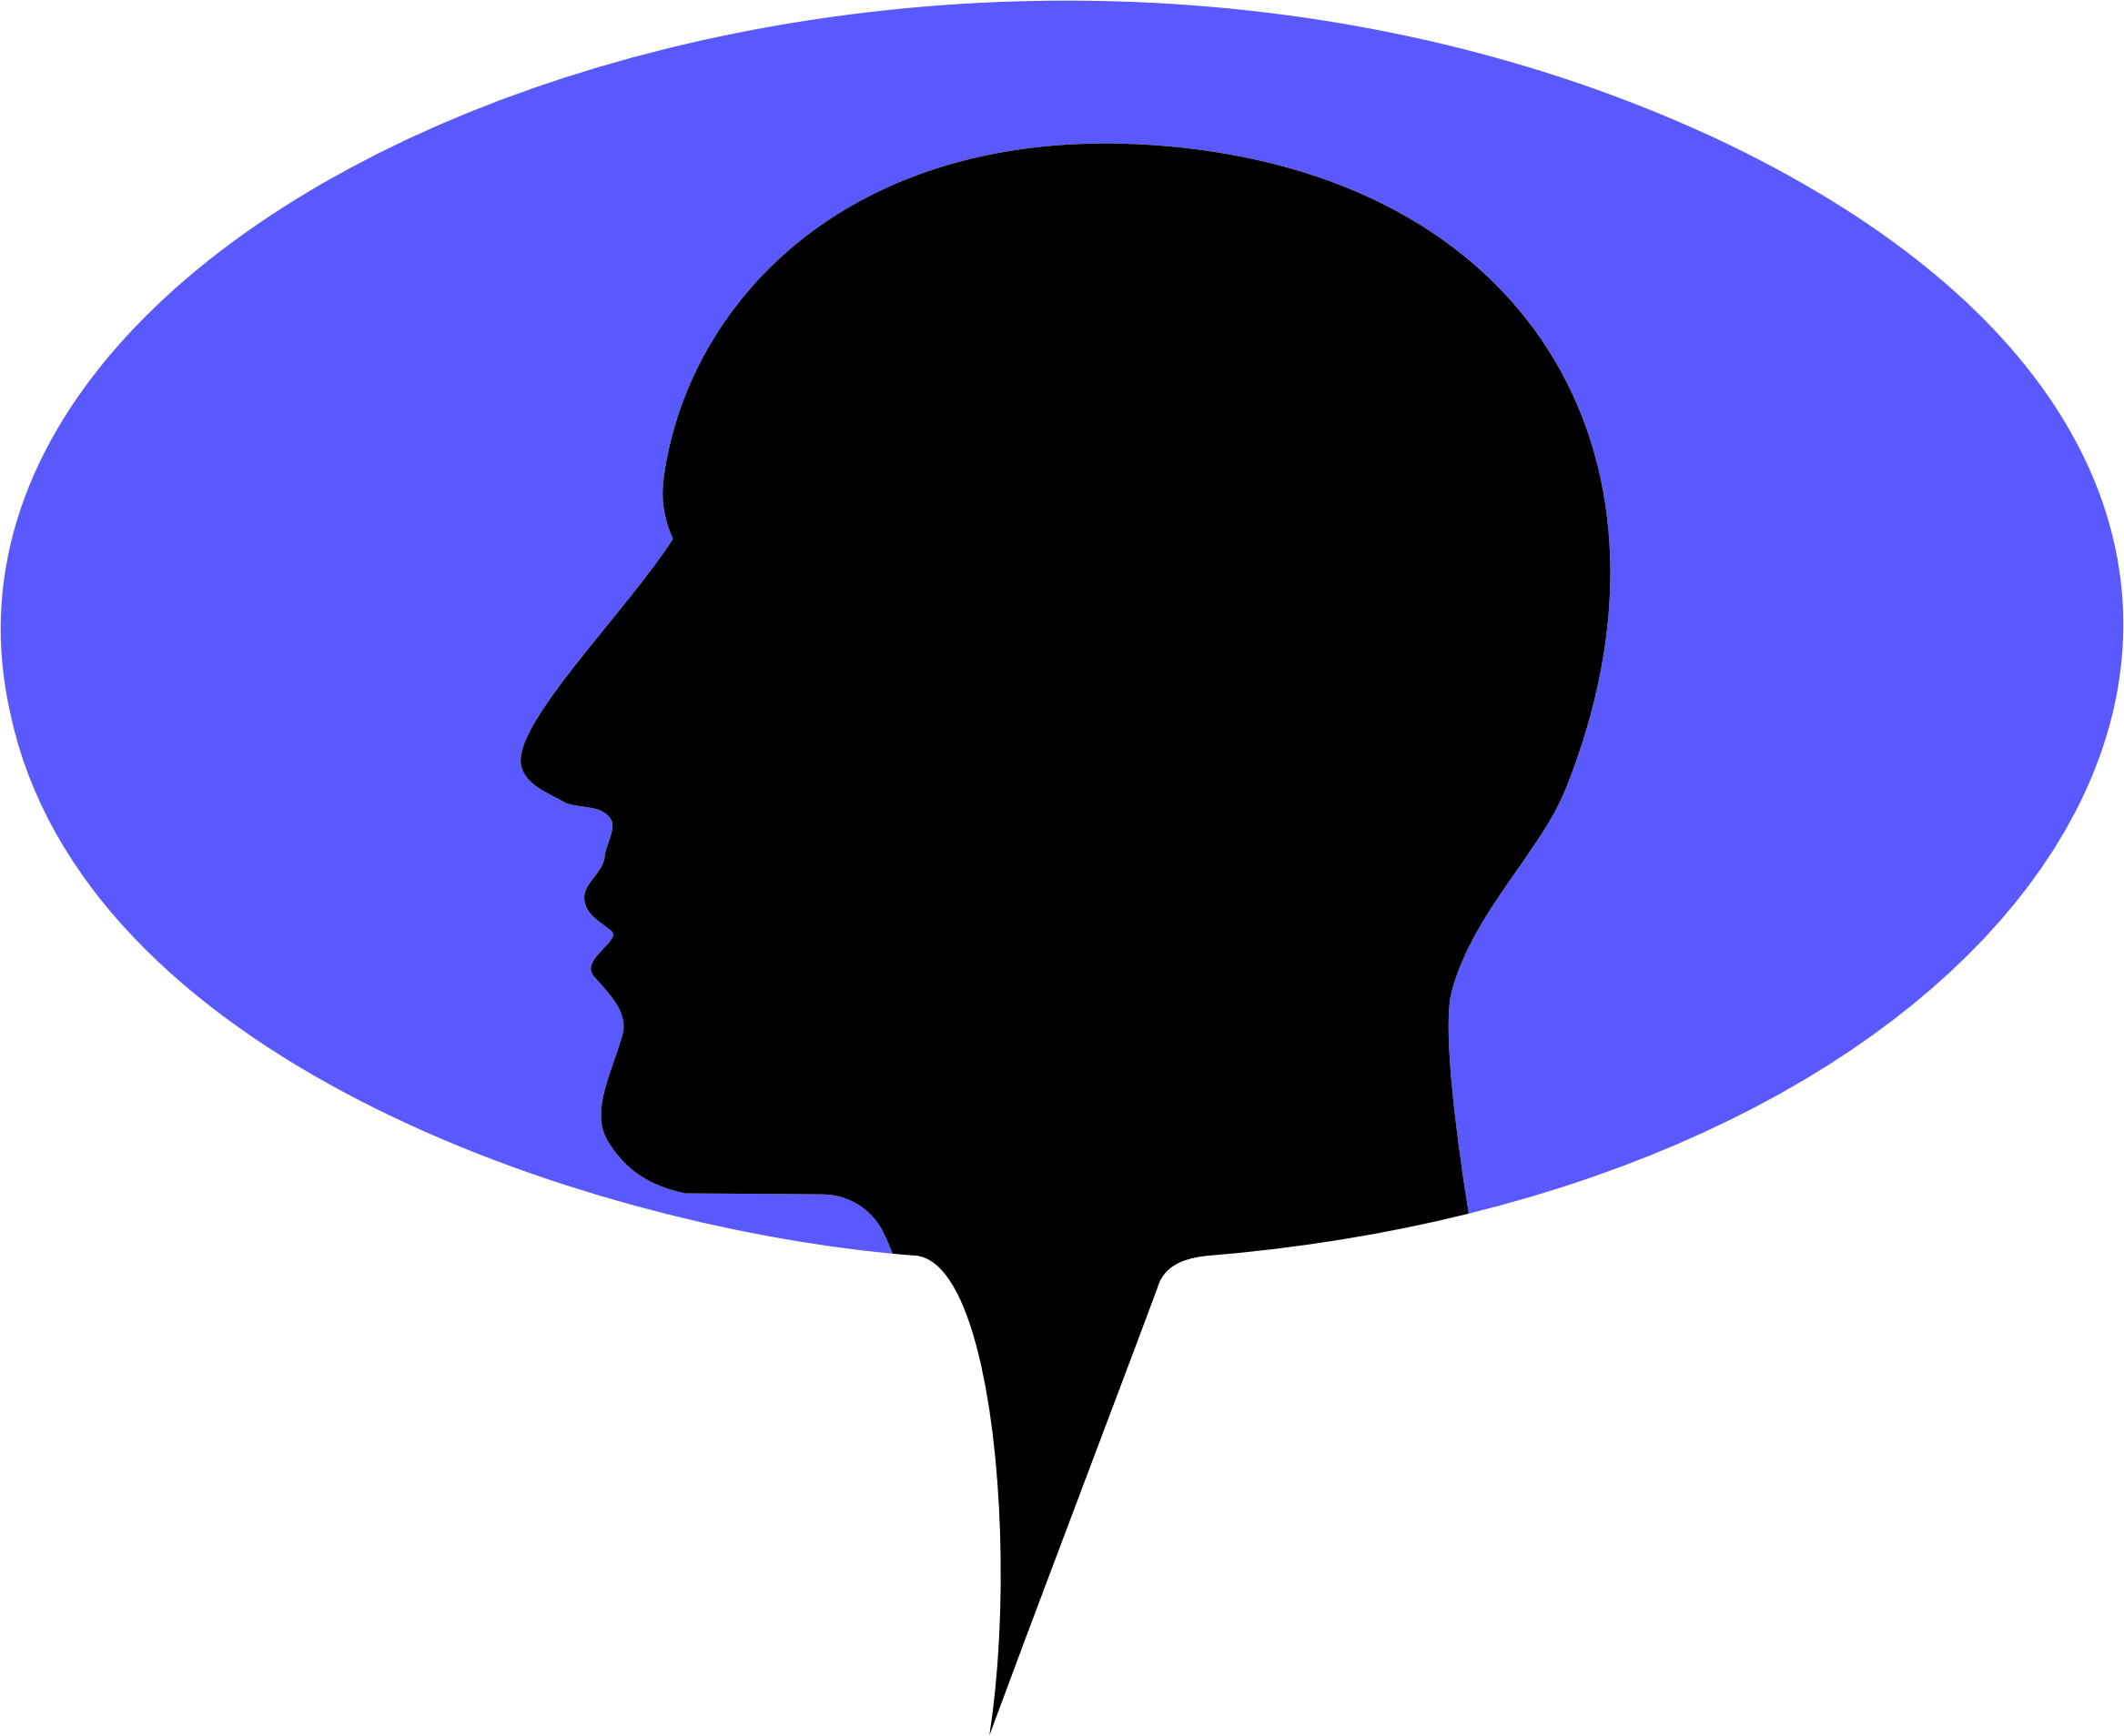 Man Head Silhouette Speech Bubble by GDJ